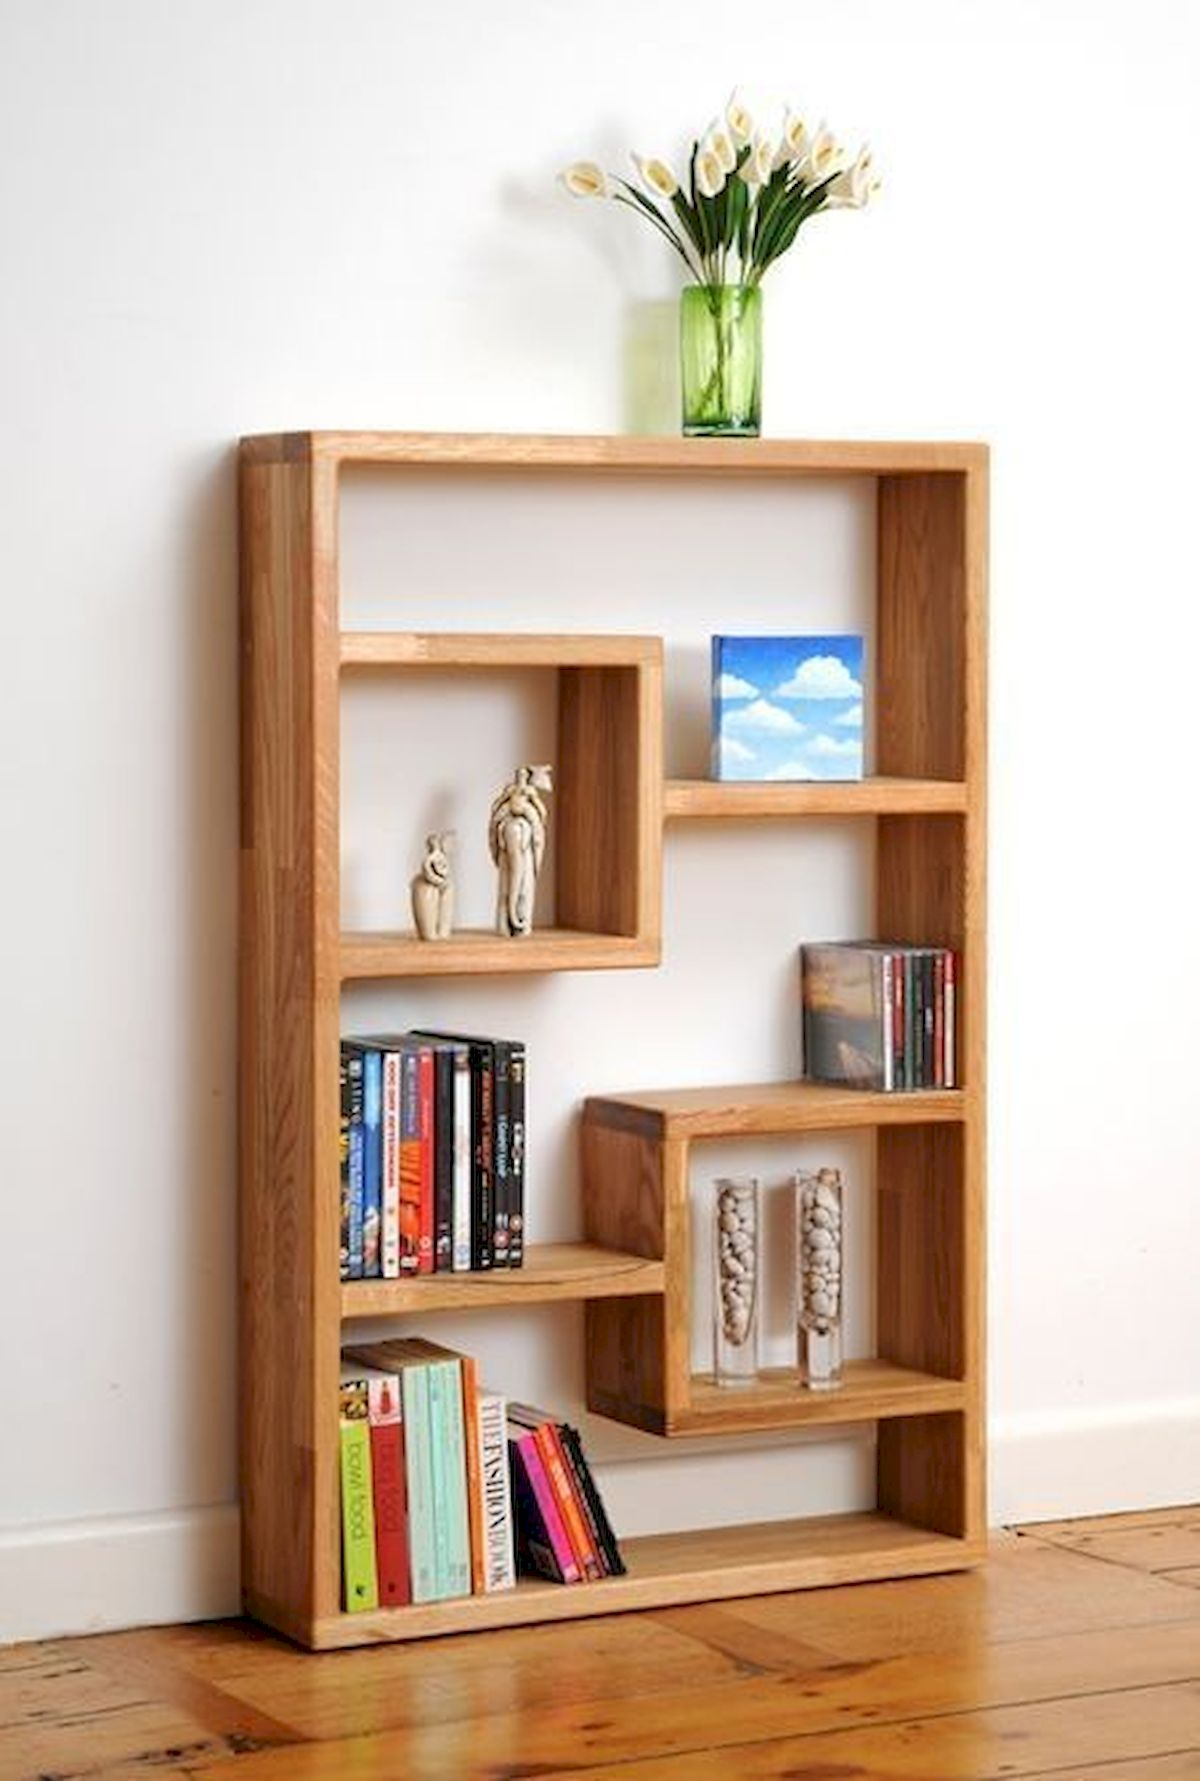 45 Awesome Furniture Ideas For Small House With Wood Project Ideas (2)